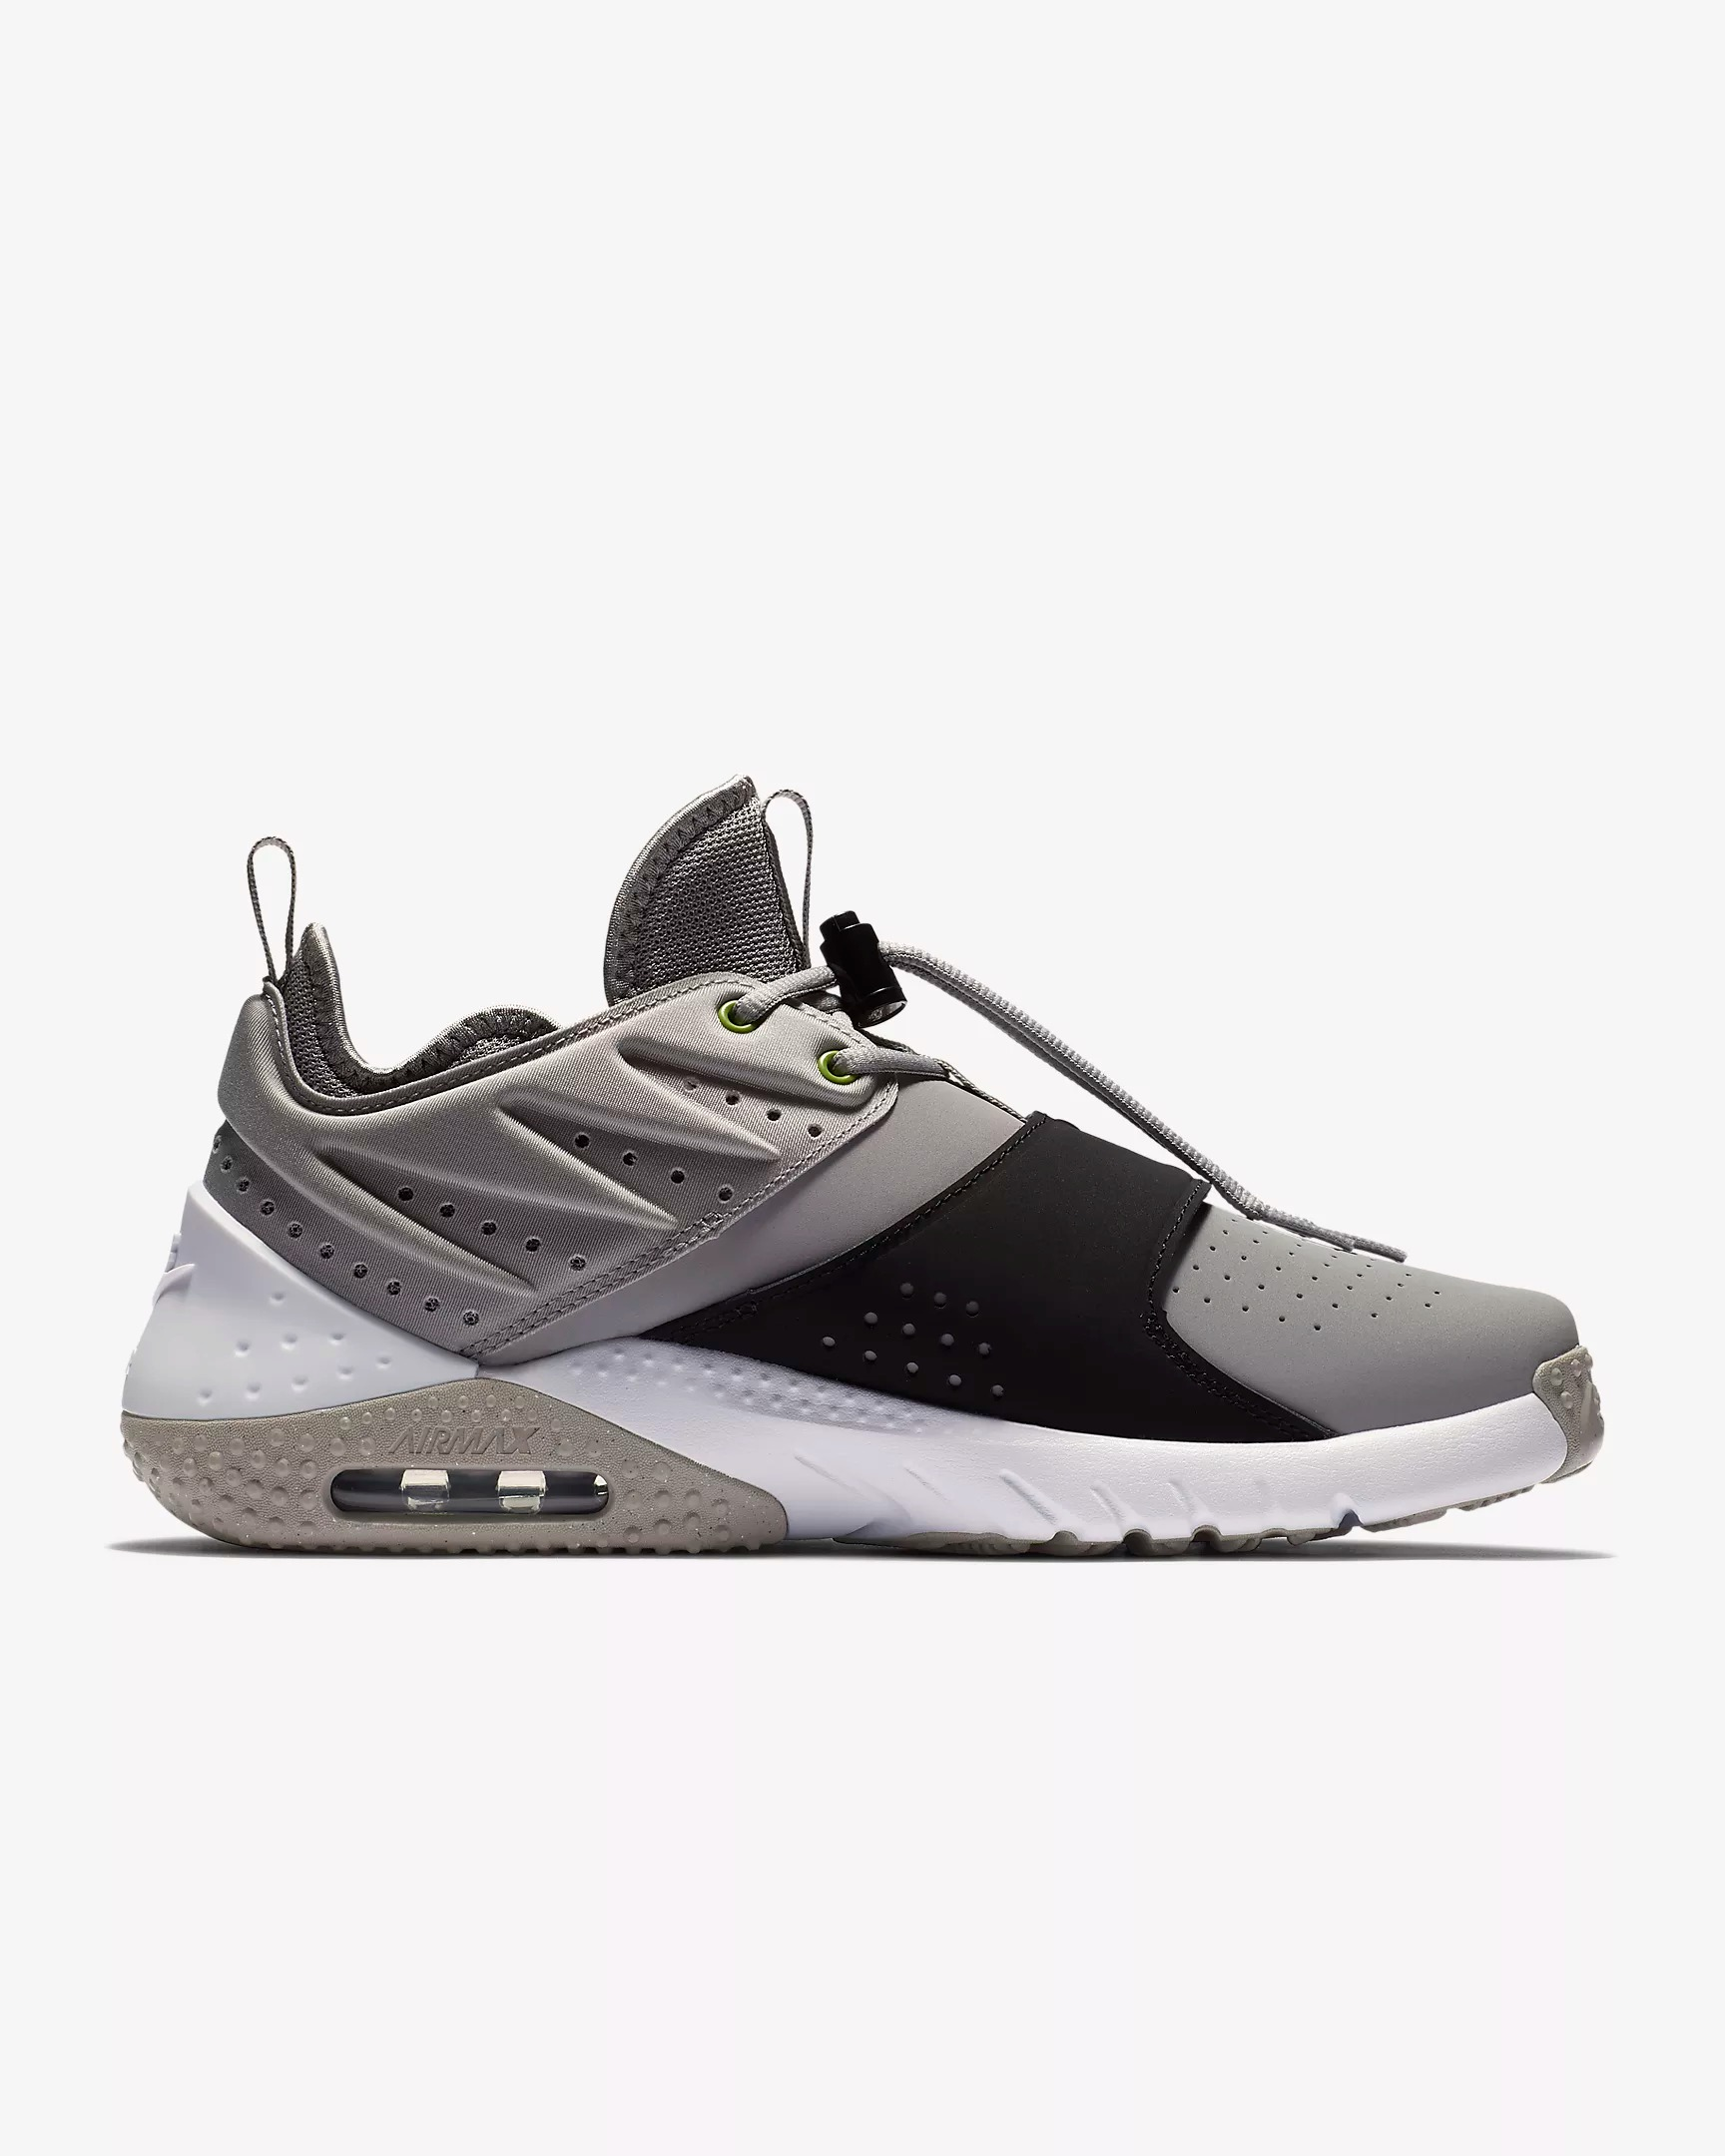 c92b40ad1 Nike Air Max Trainer 1 Leather Training Shoes - SPORT SHOES TRAINING ...